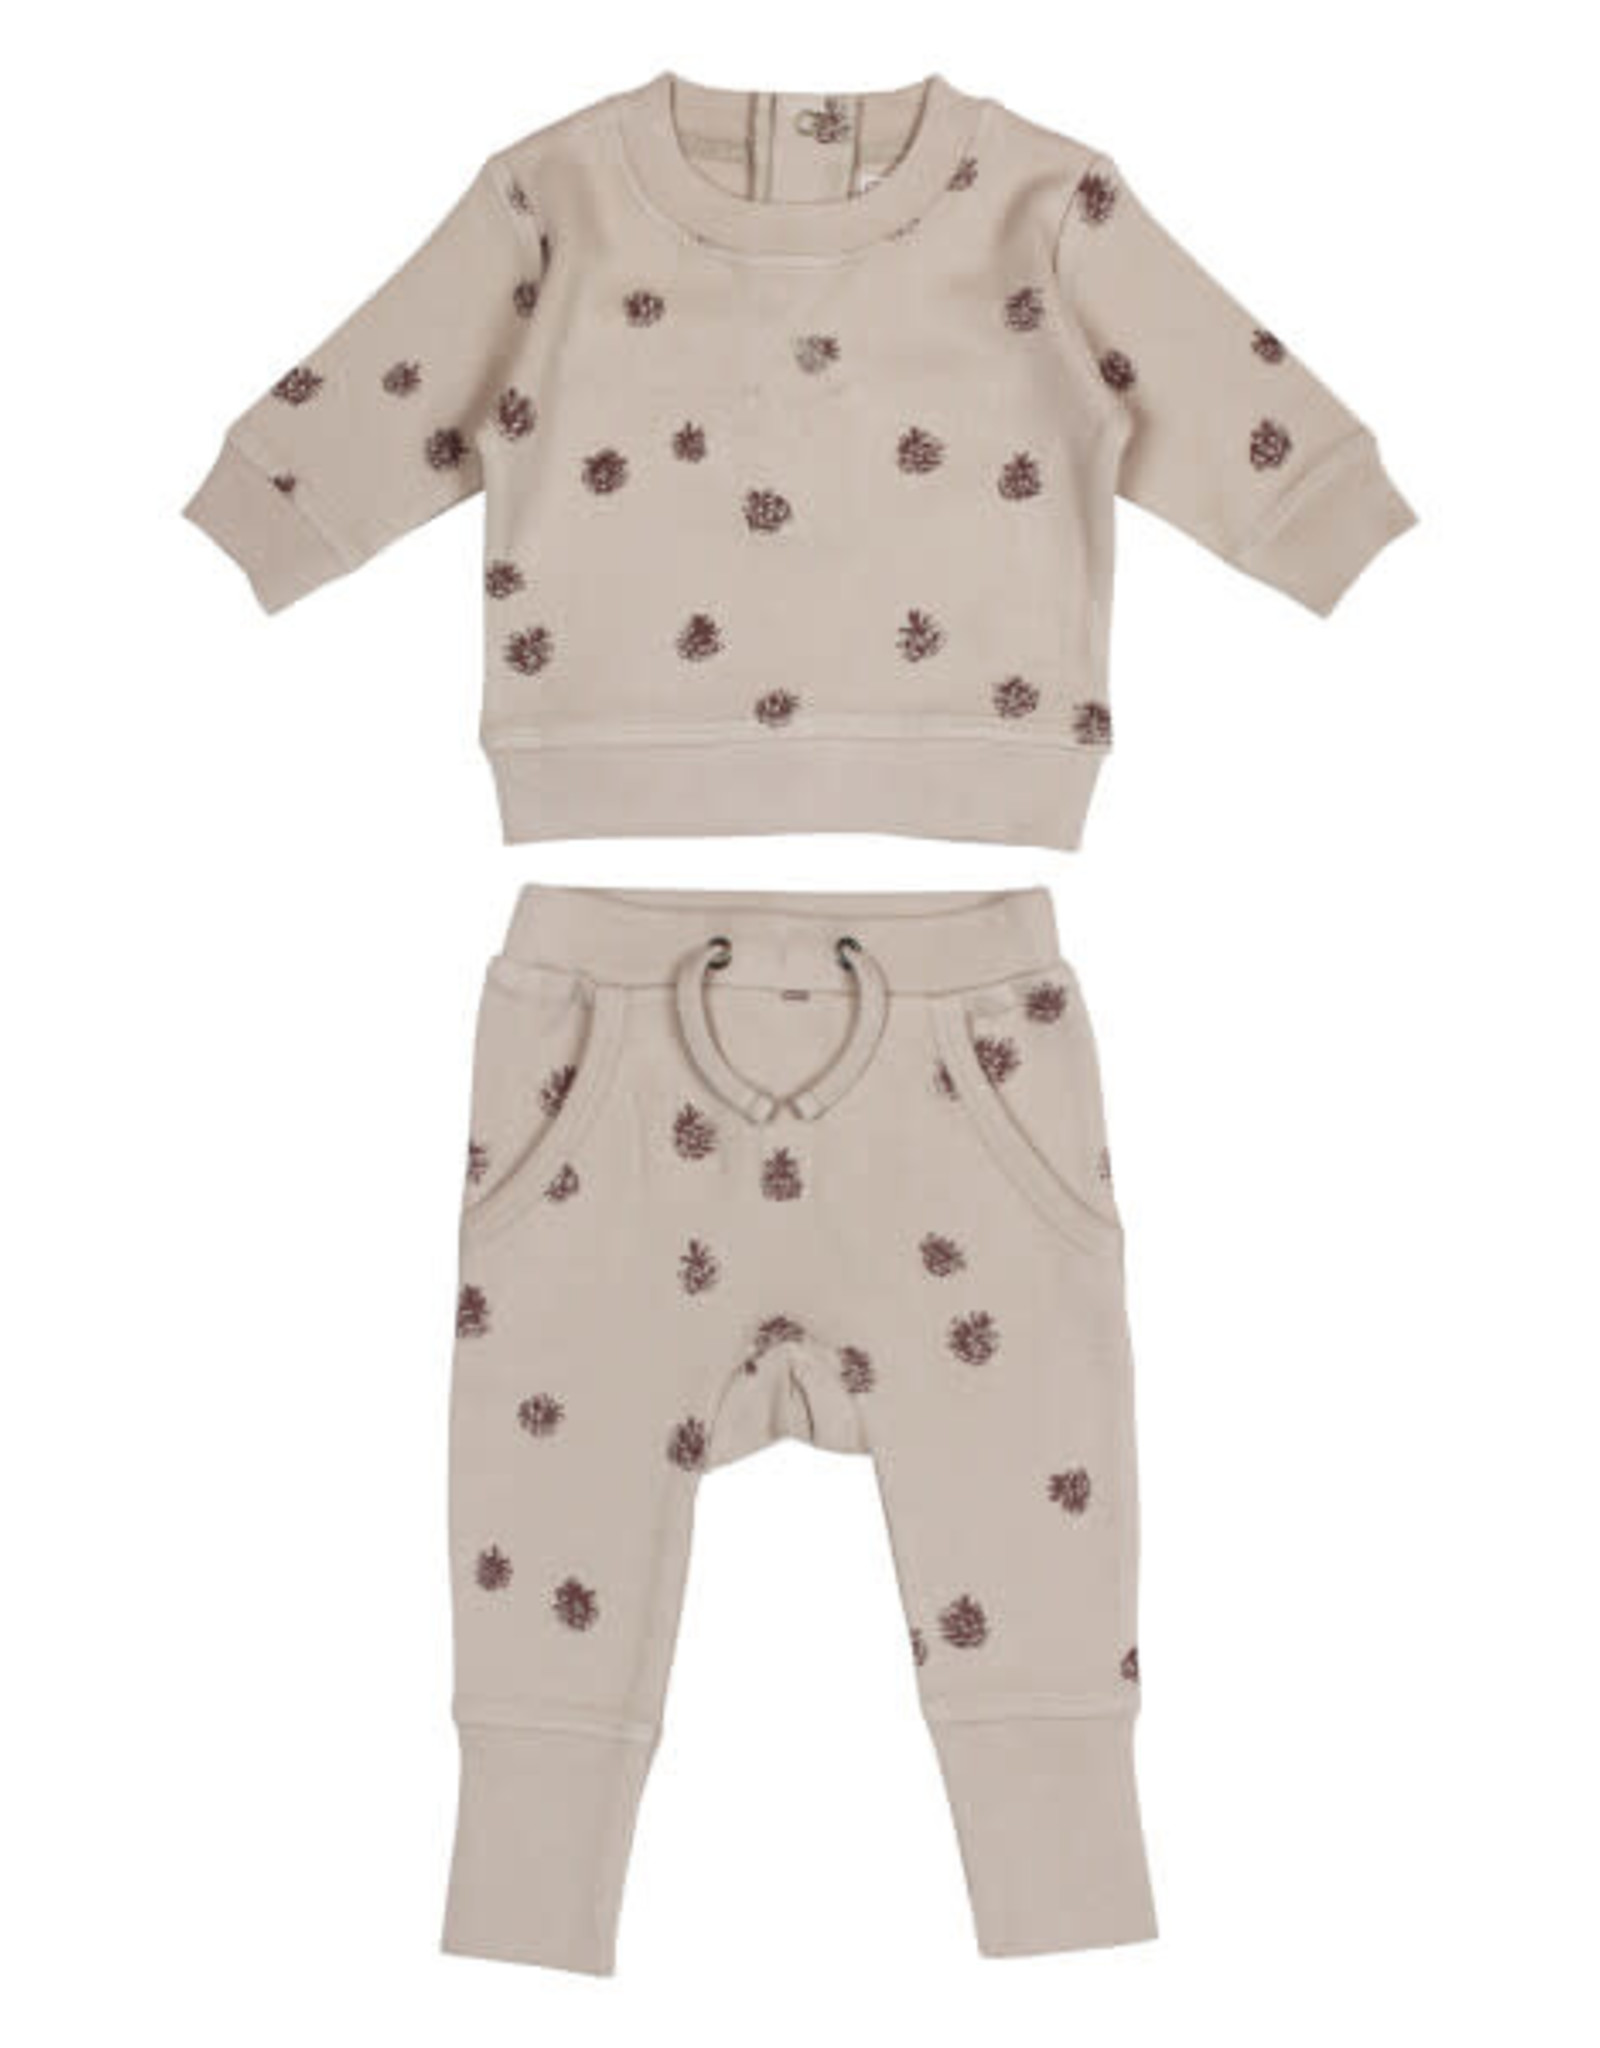 L'oved Baby Baby Oatmeal Sweatshirt & Jogger Set with Pinecone Print